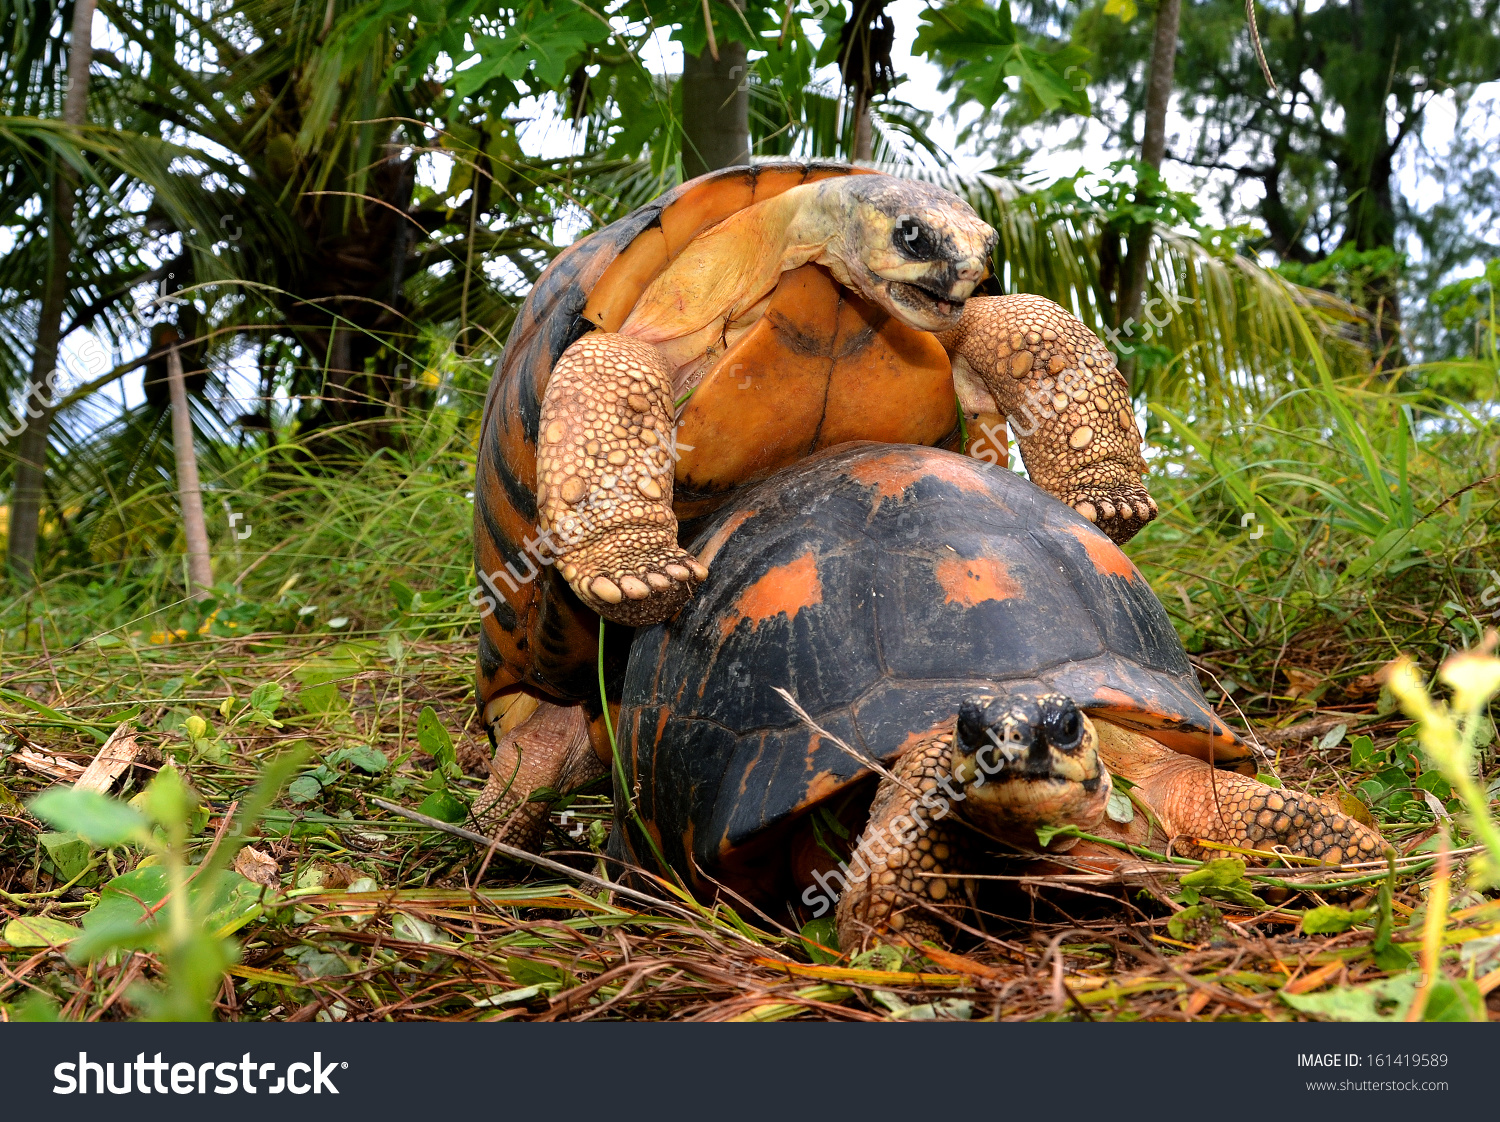 Radiated Tortoise clipart #12, Download drawings